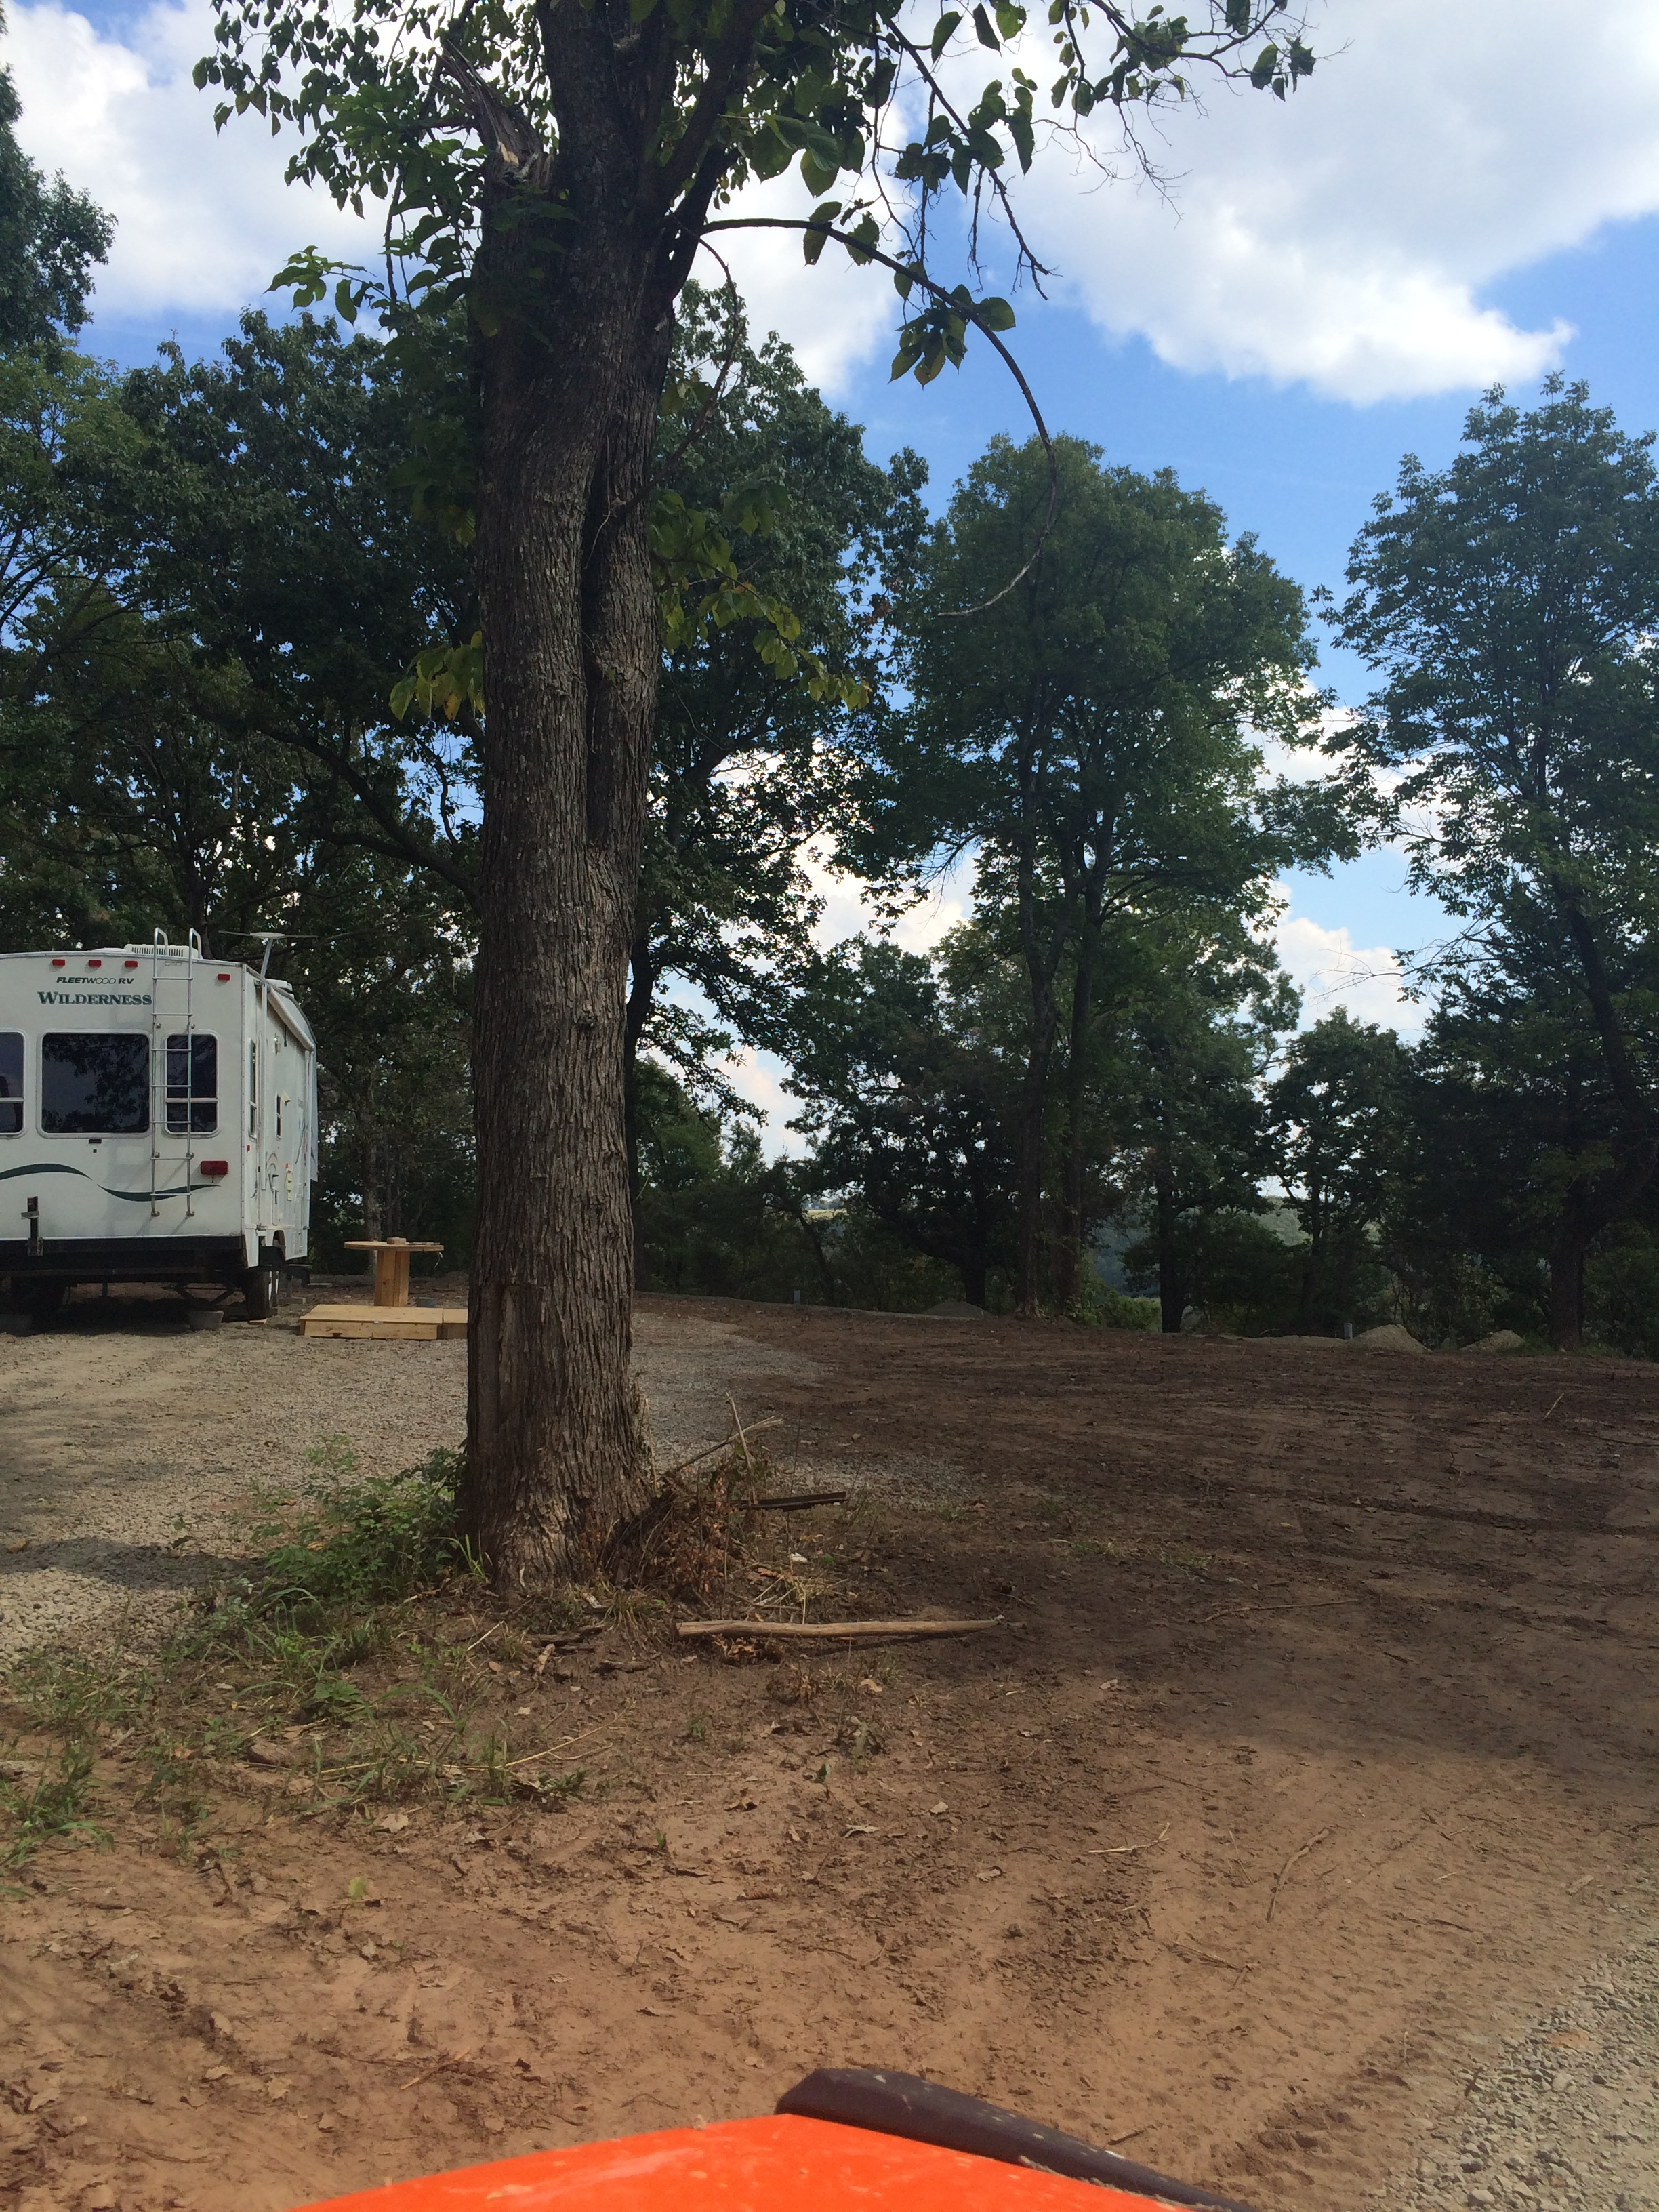 Campers Using the RV Sites